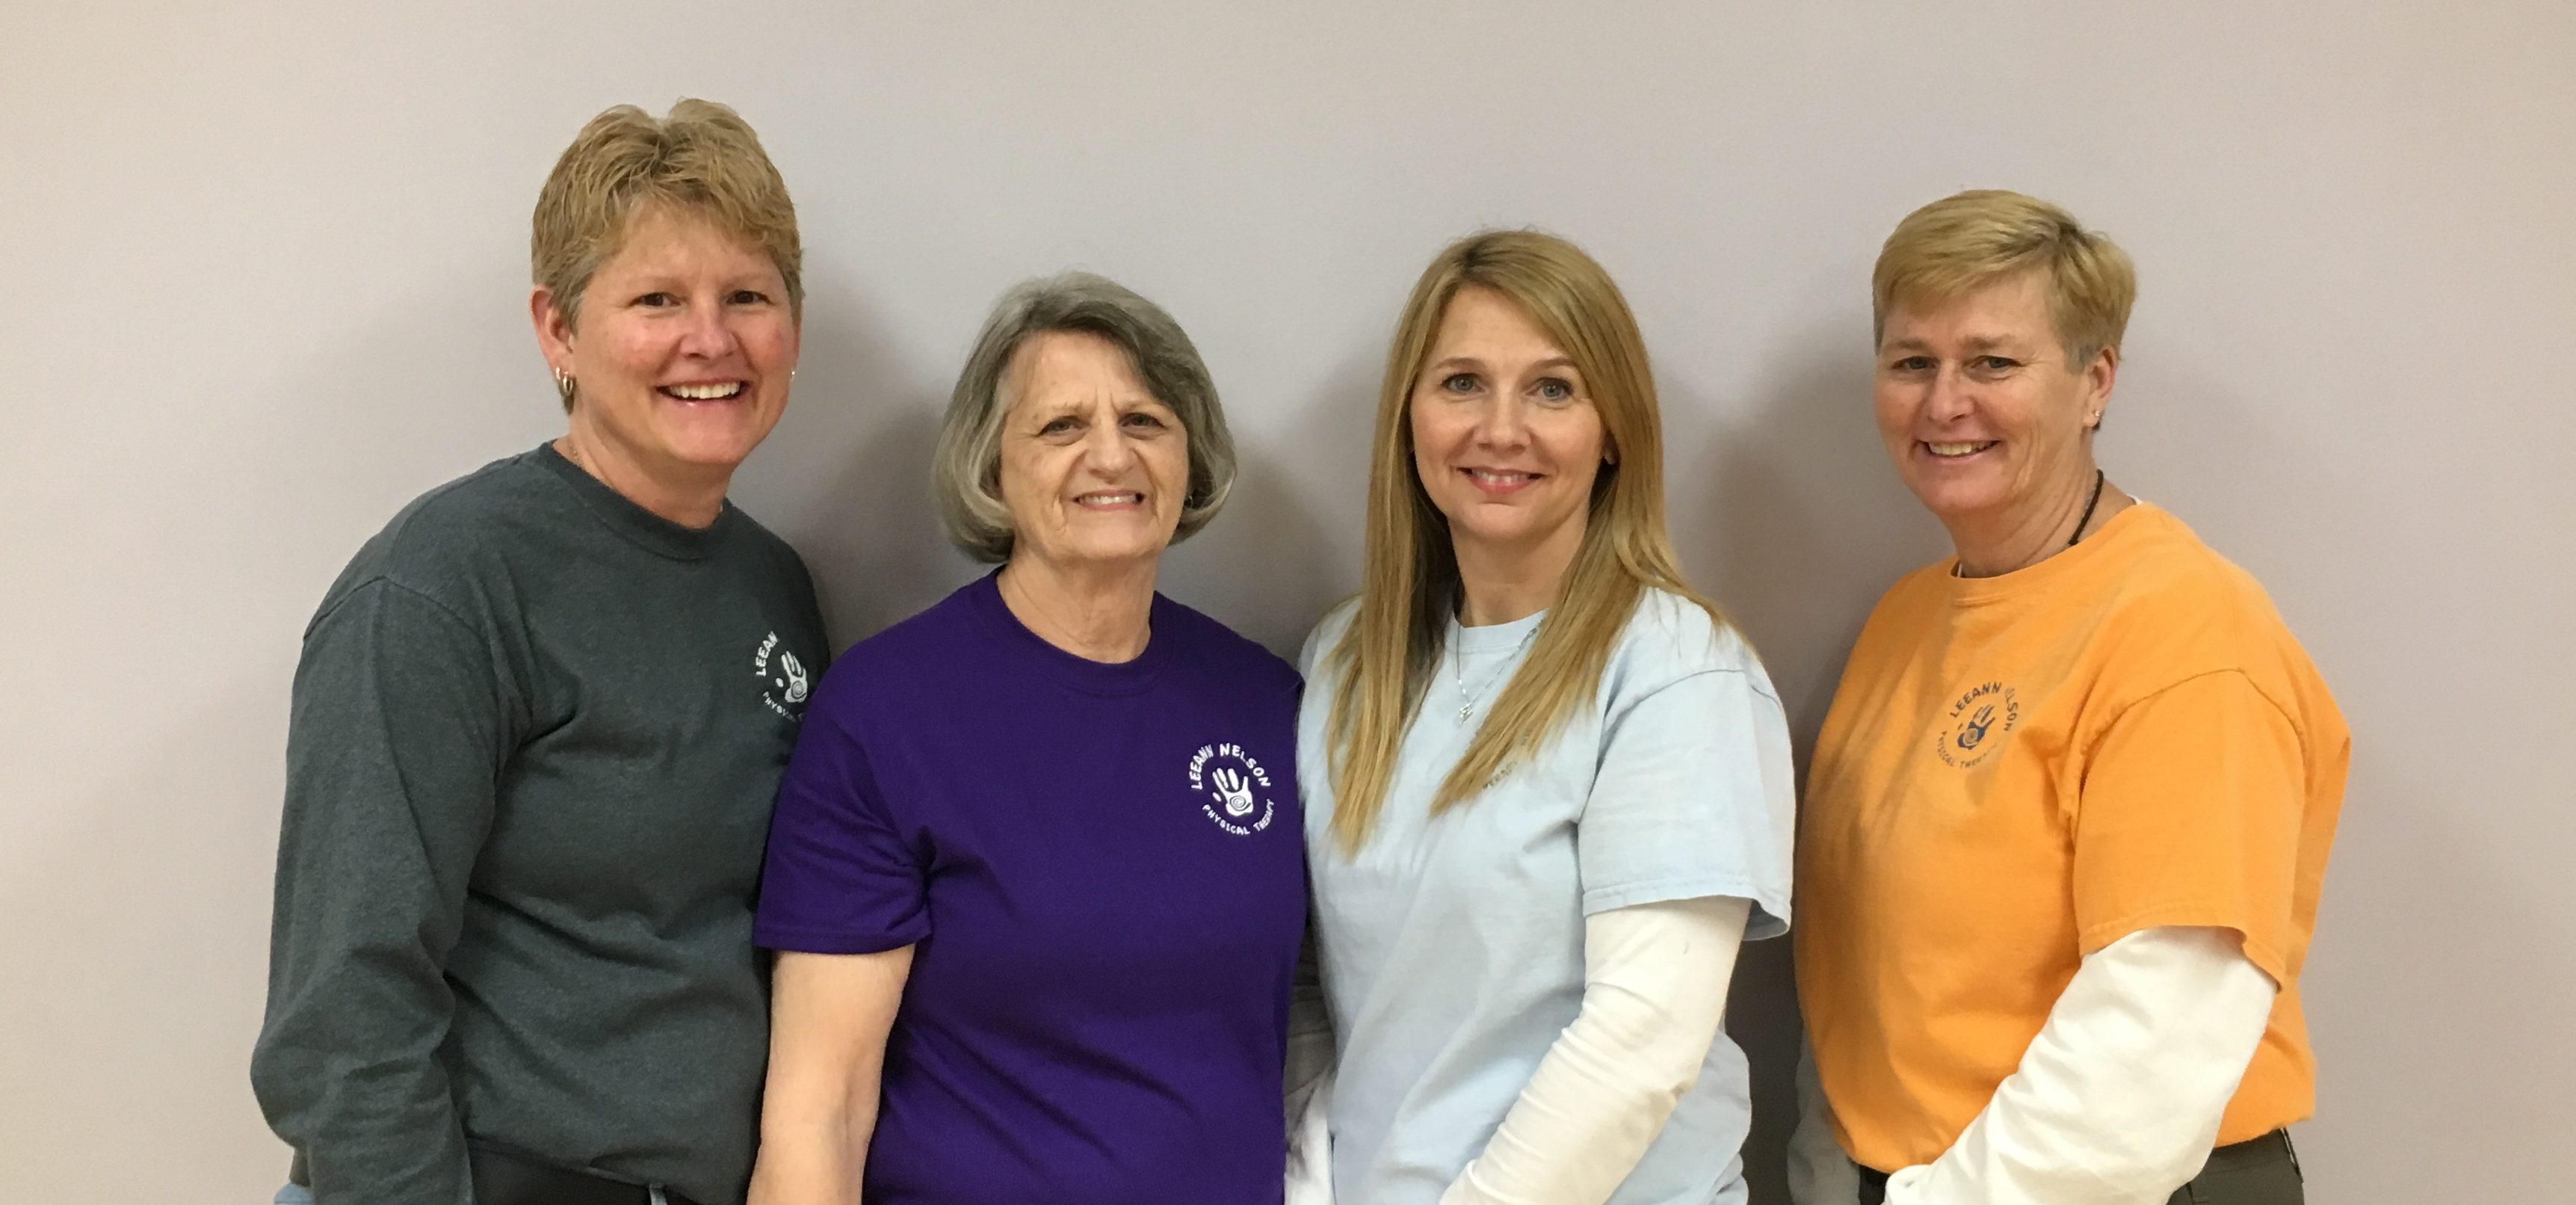 LeeAnn Nelson Physical Therapy Staff photo